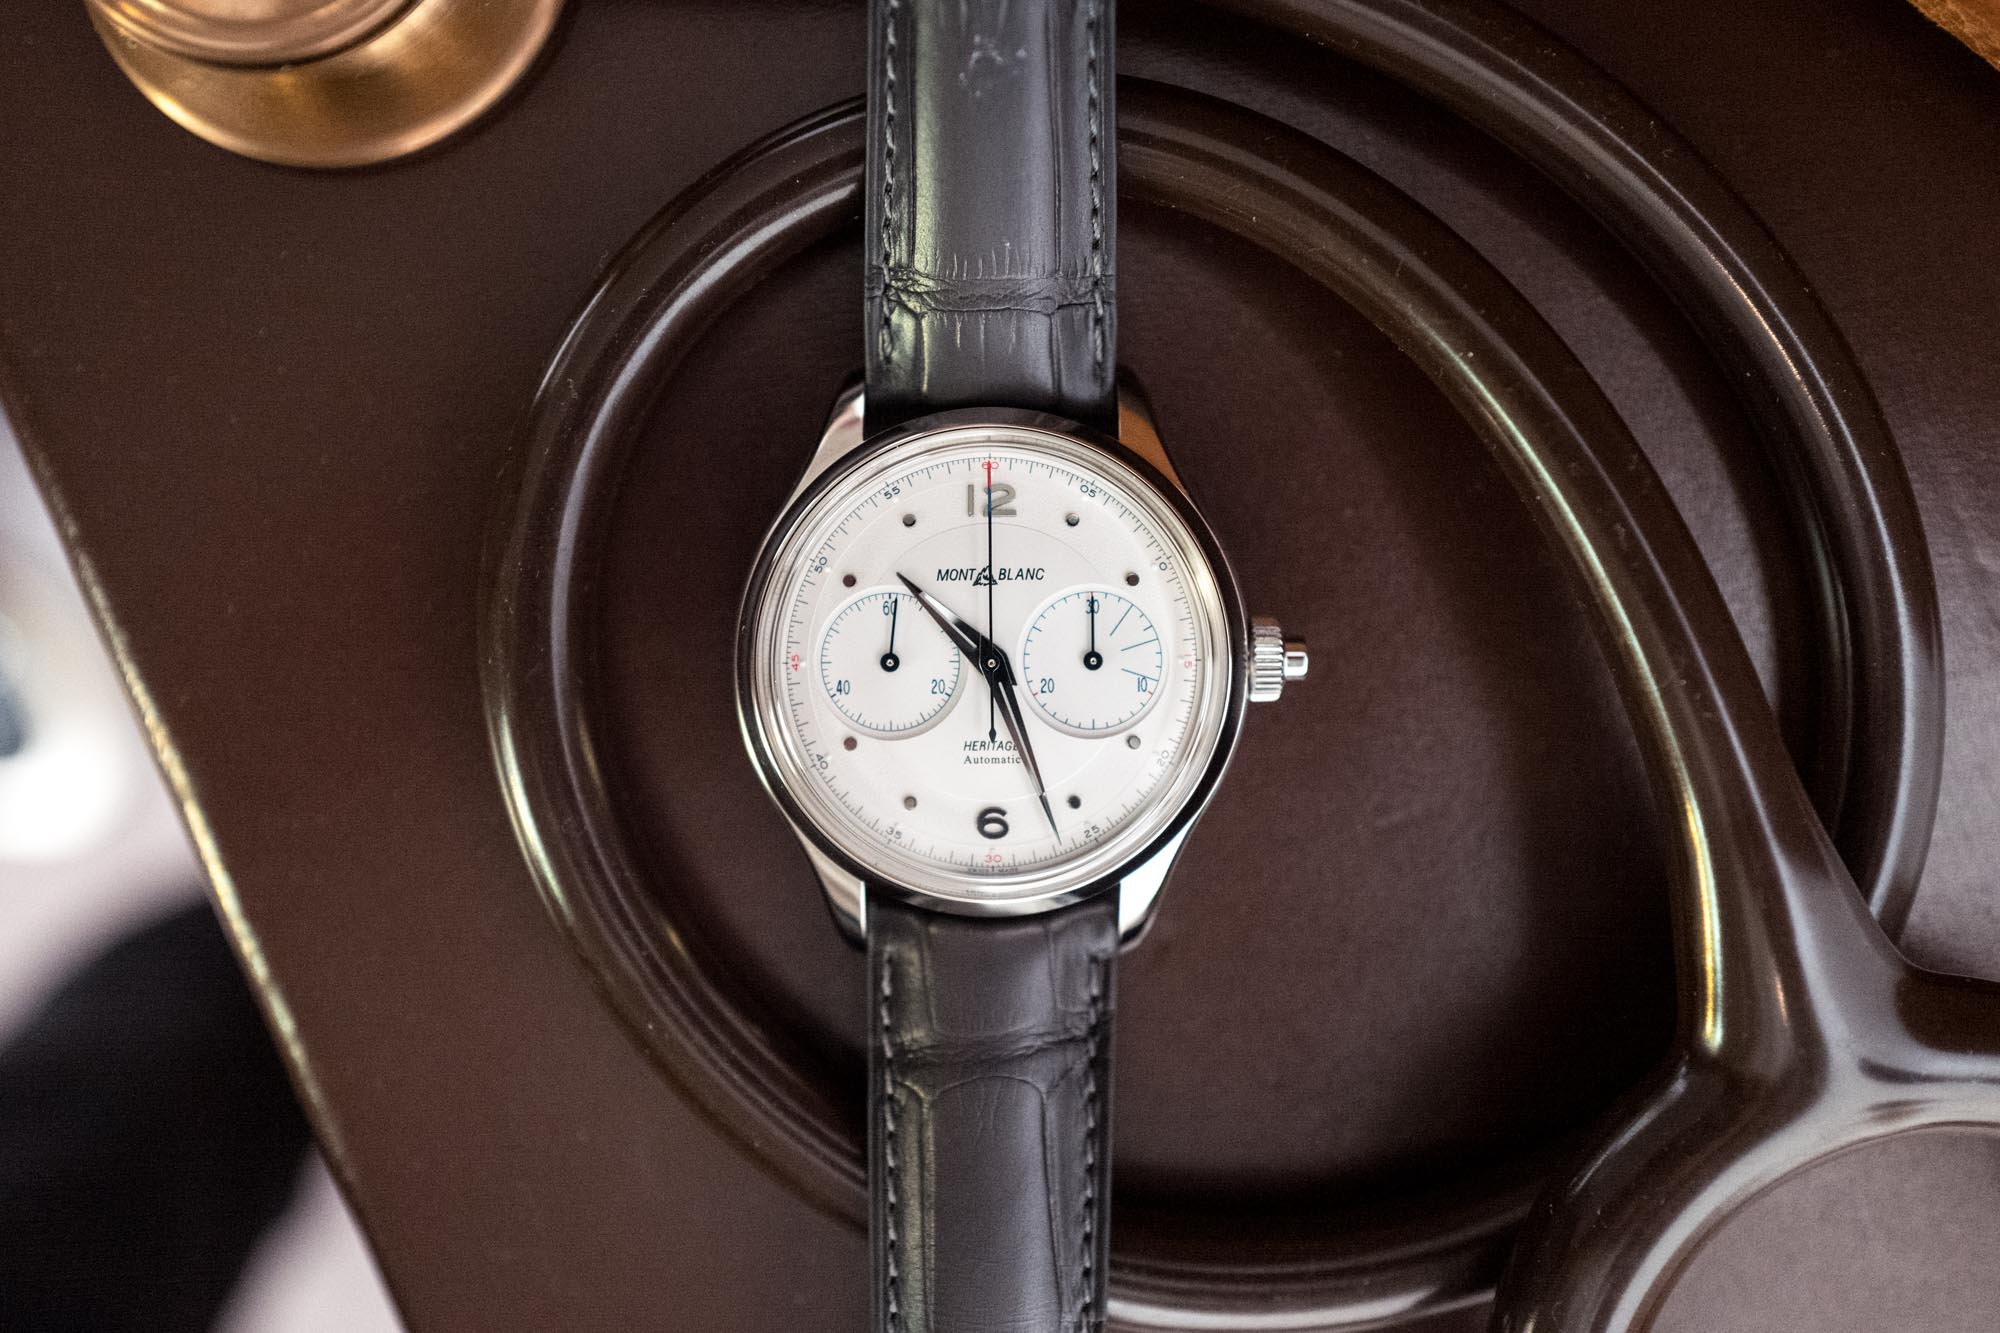 SIHH 2019 - Montblanc Heritage Monopusher Chronograph